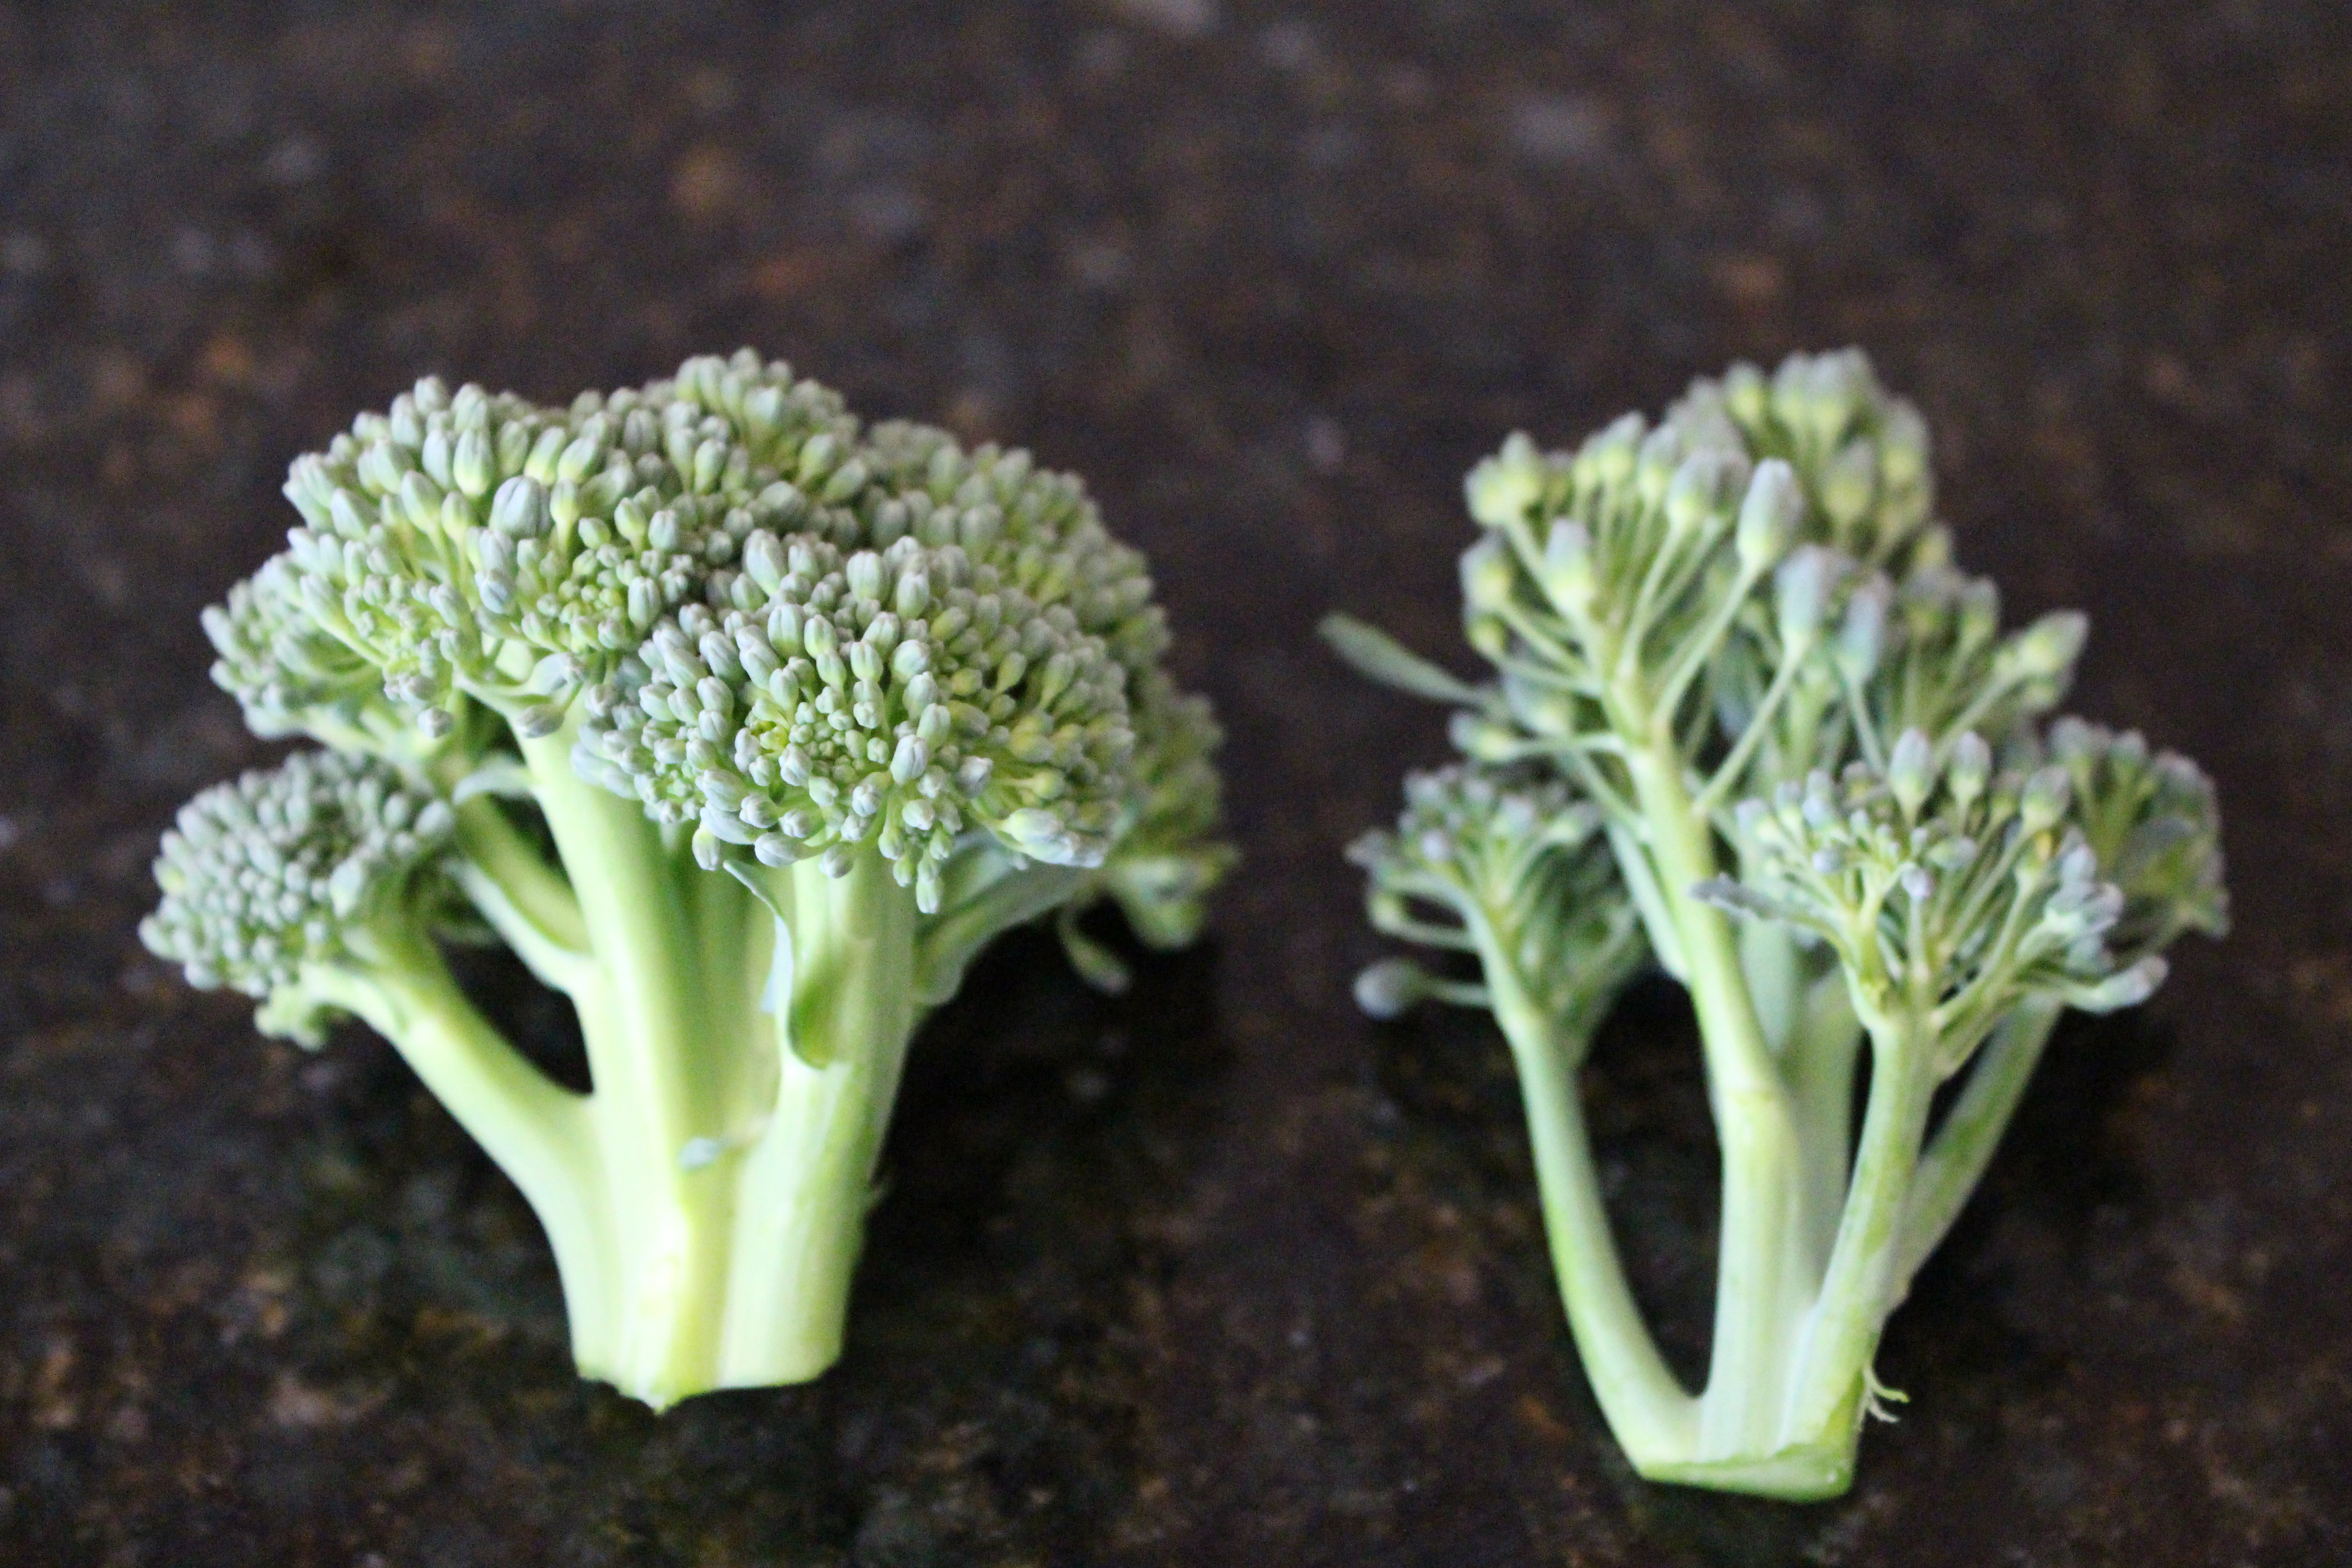 When To Harvest Broccoli The Gardener And The Chef